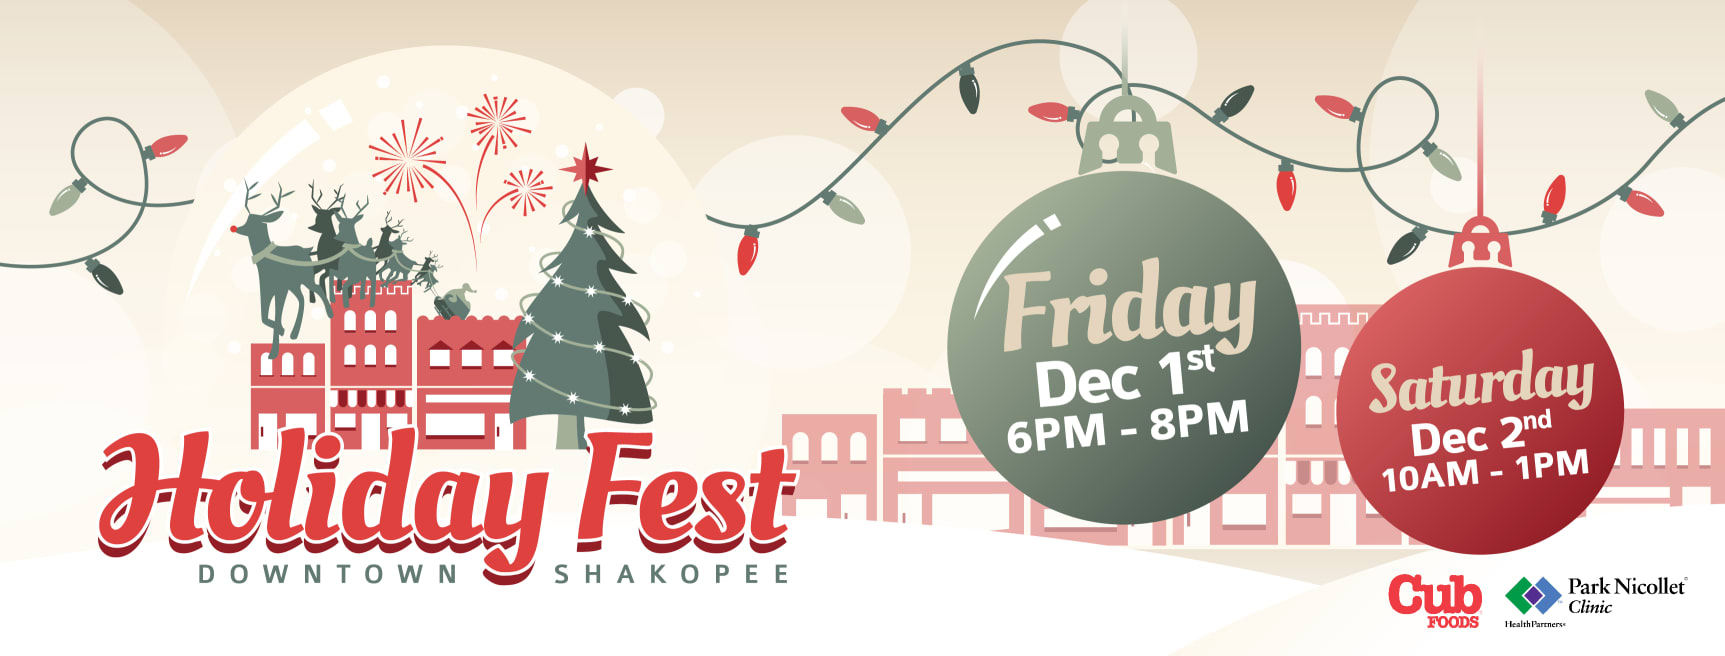 HolidayFest_FB_CoverPhoto_FINAL-w1725.jpg